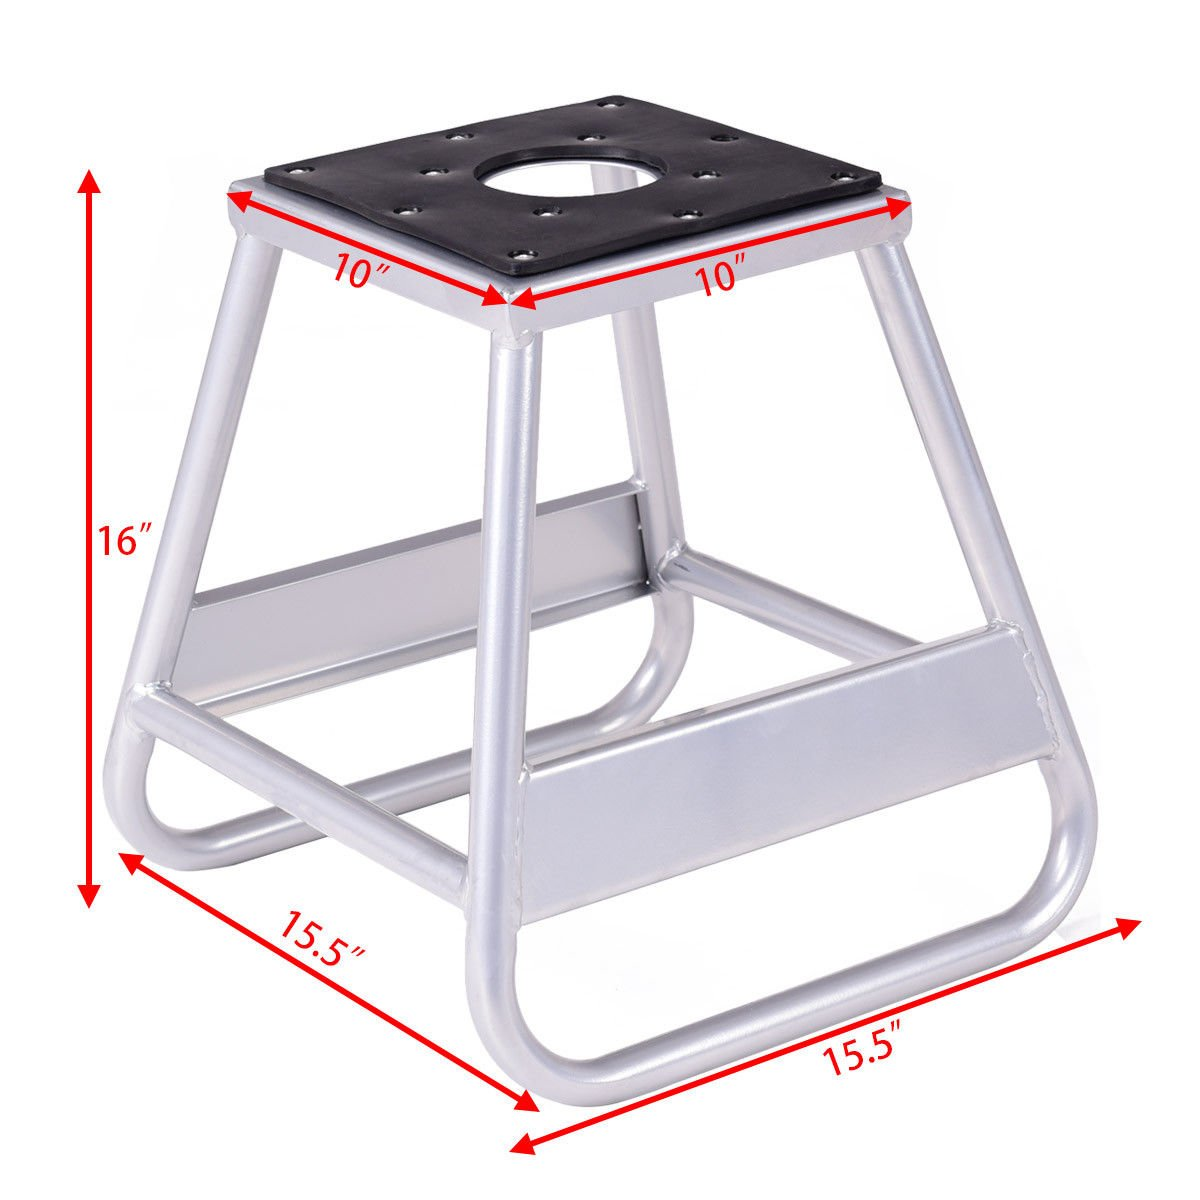 Goplus Motorcycle Motocross Dirt Bike Panel Stand Hoist Maintenance Lift Jack 1000LB Capacity (10''× 10'' Without Removable Oil Pan) by Goplus (Image #4)